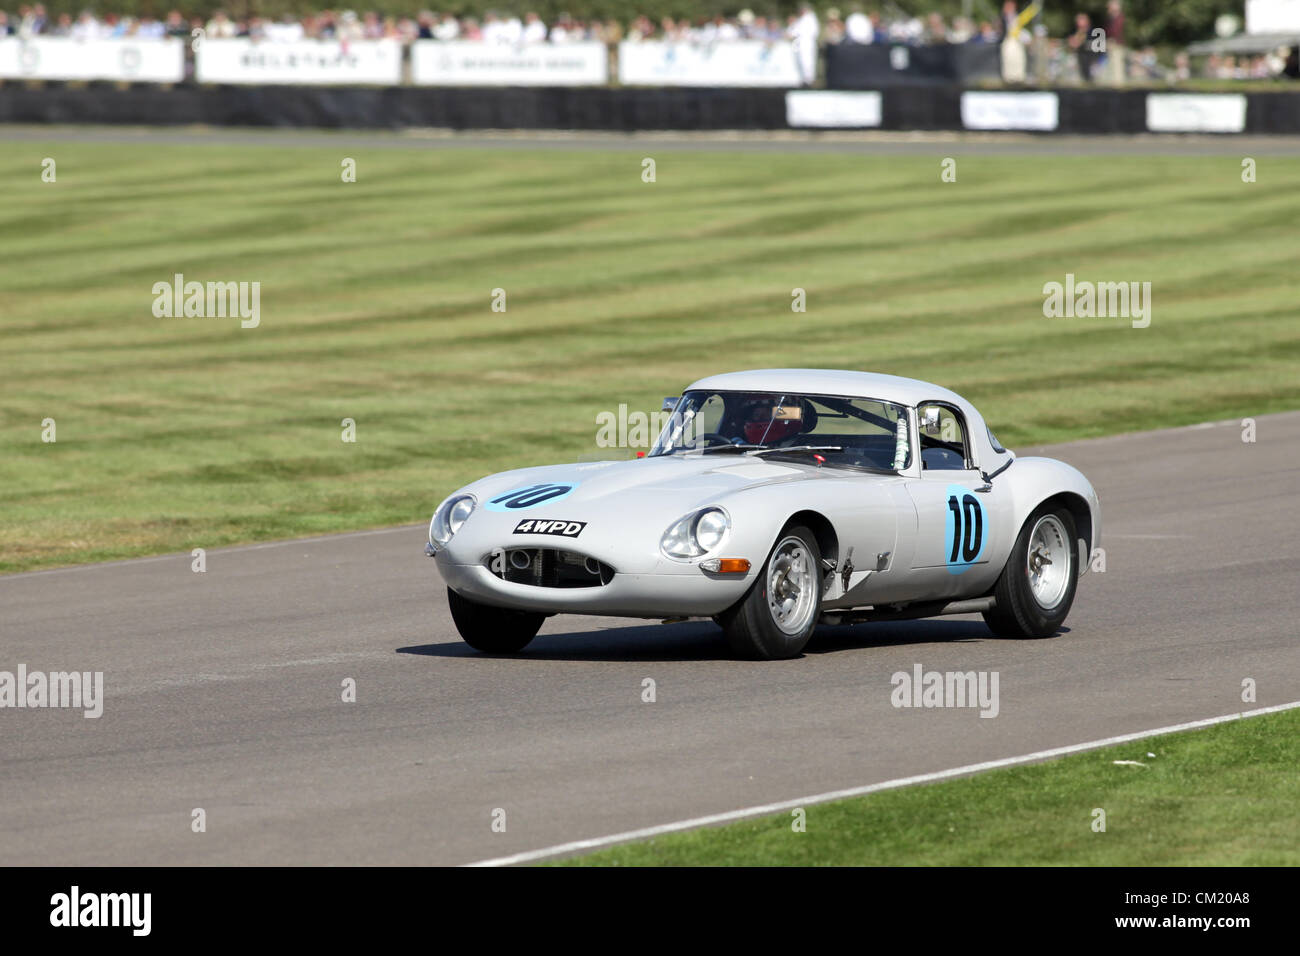 Goodwood Estate, Chichester, UK. 15th September 2012. Ludovic Lindsay driving a 1961 Jaguar E-type lightweight during Stock Photo